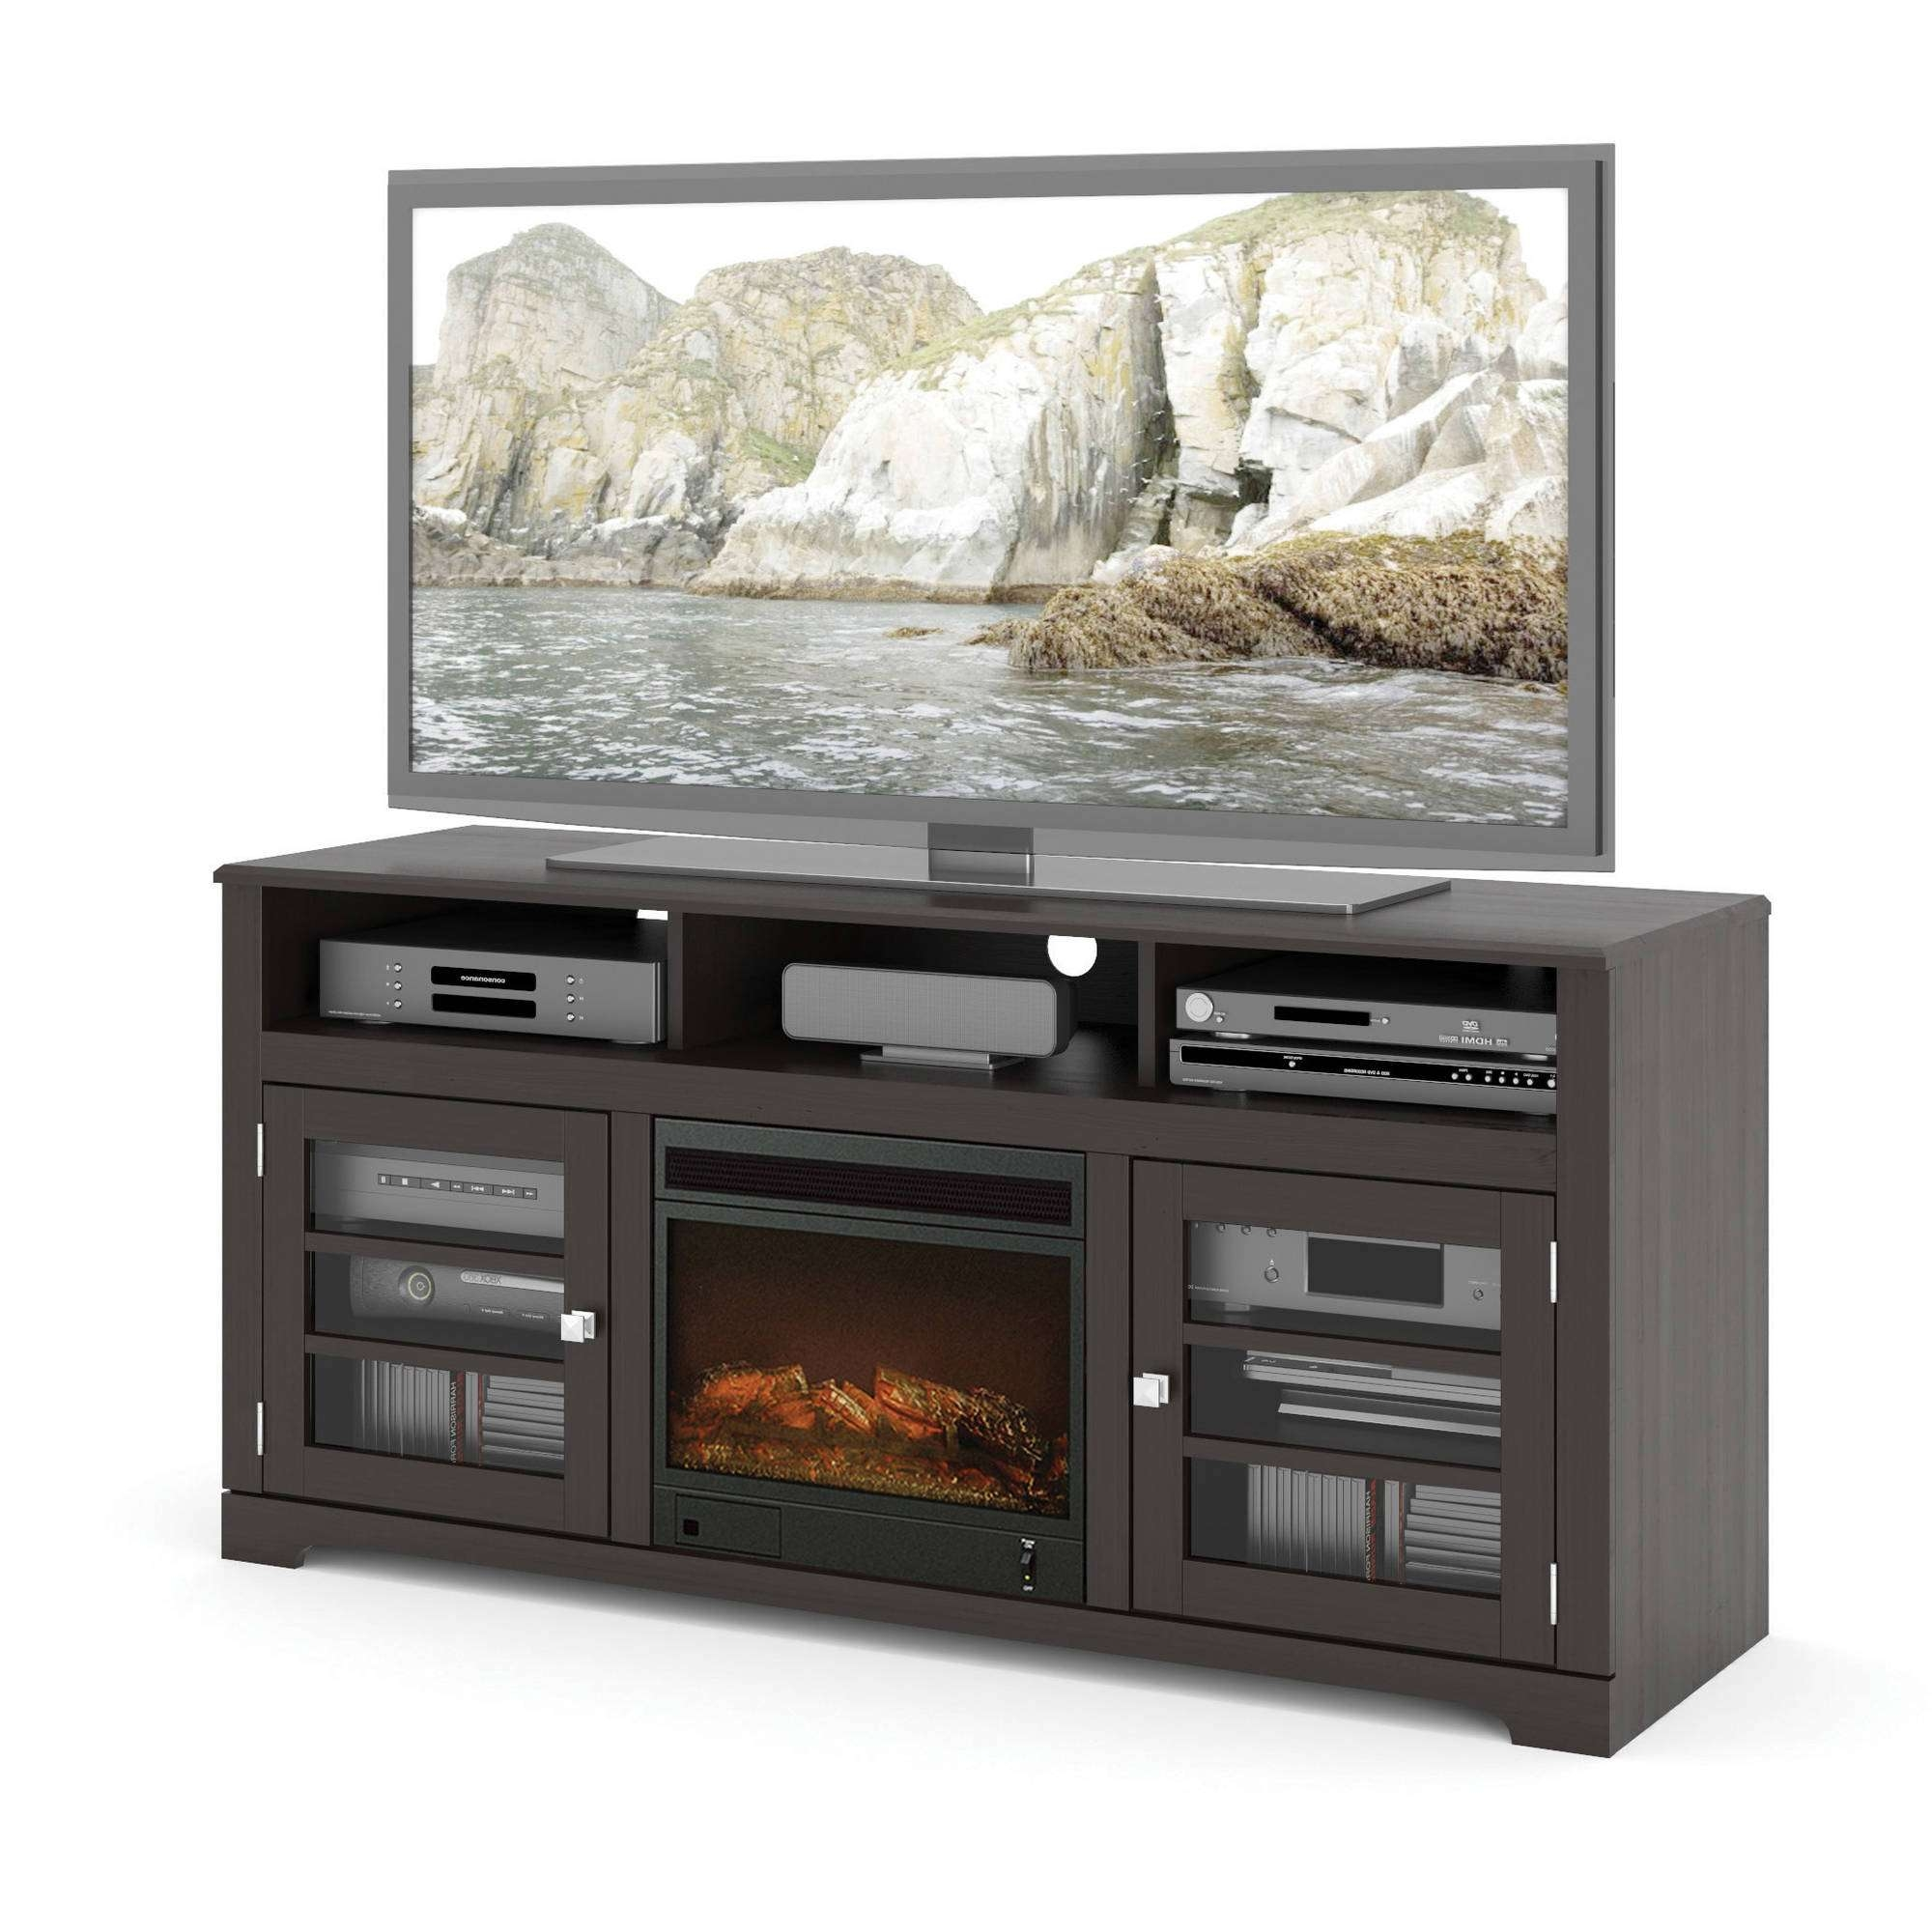 Fireplace Tv Stands – Walmart With Regard To Rustic 60 Inch Tv Stands (View 14 of 15)